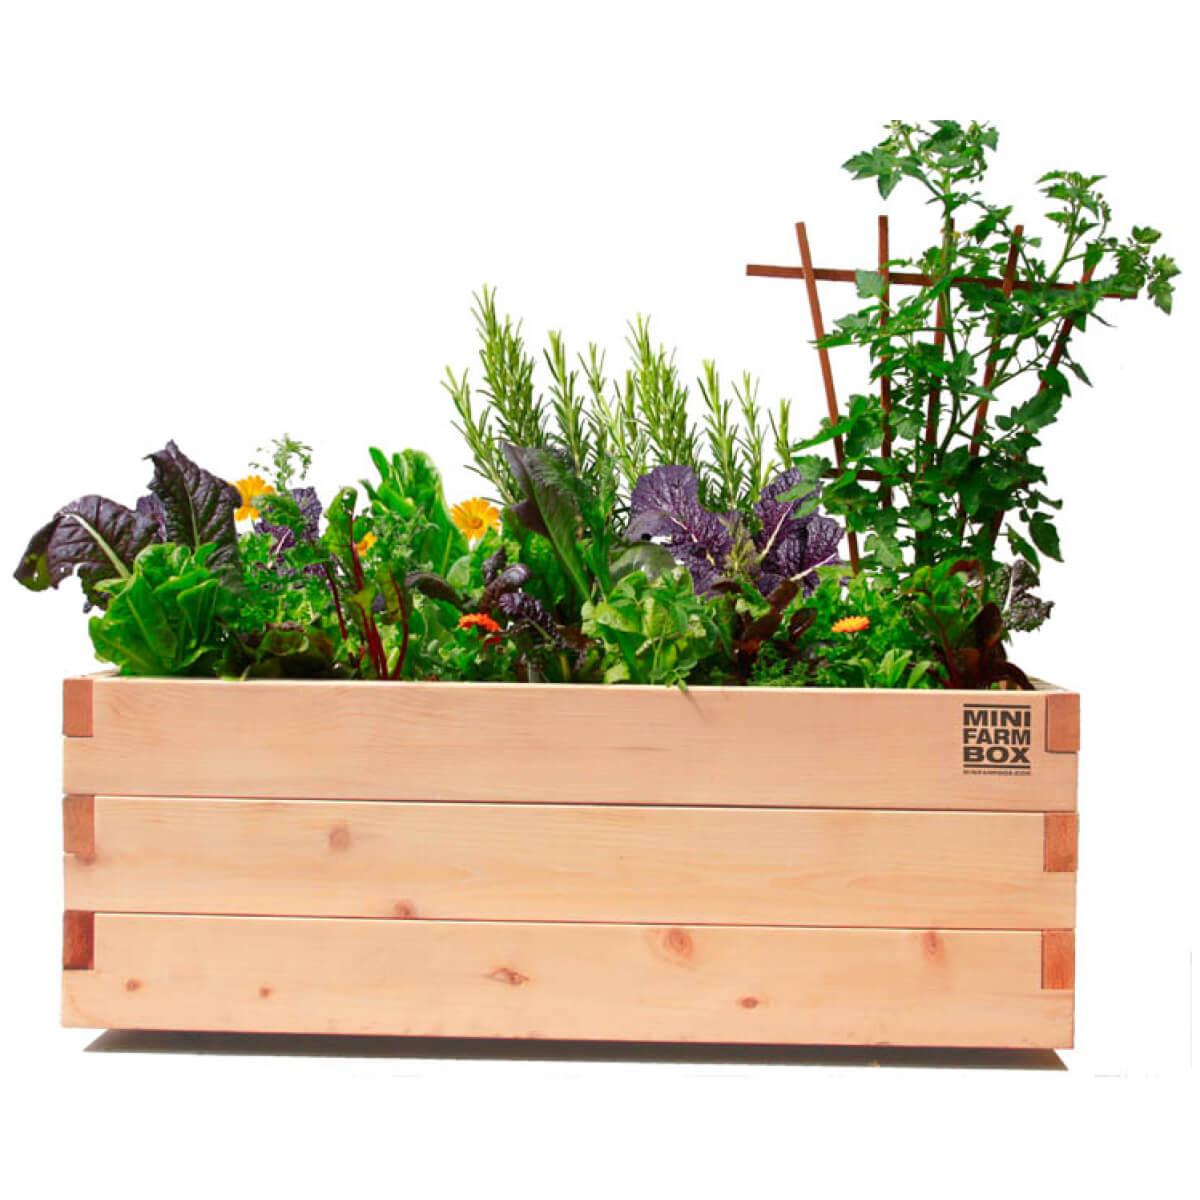 Mini Farm Patio Box